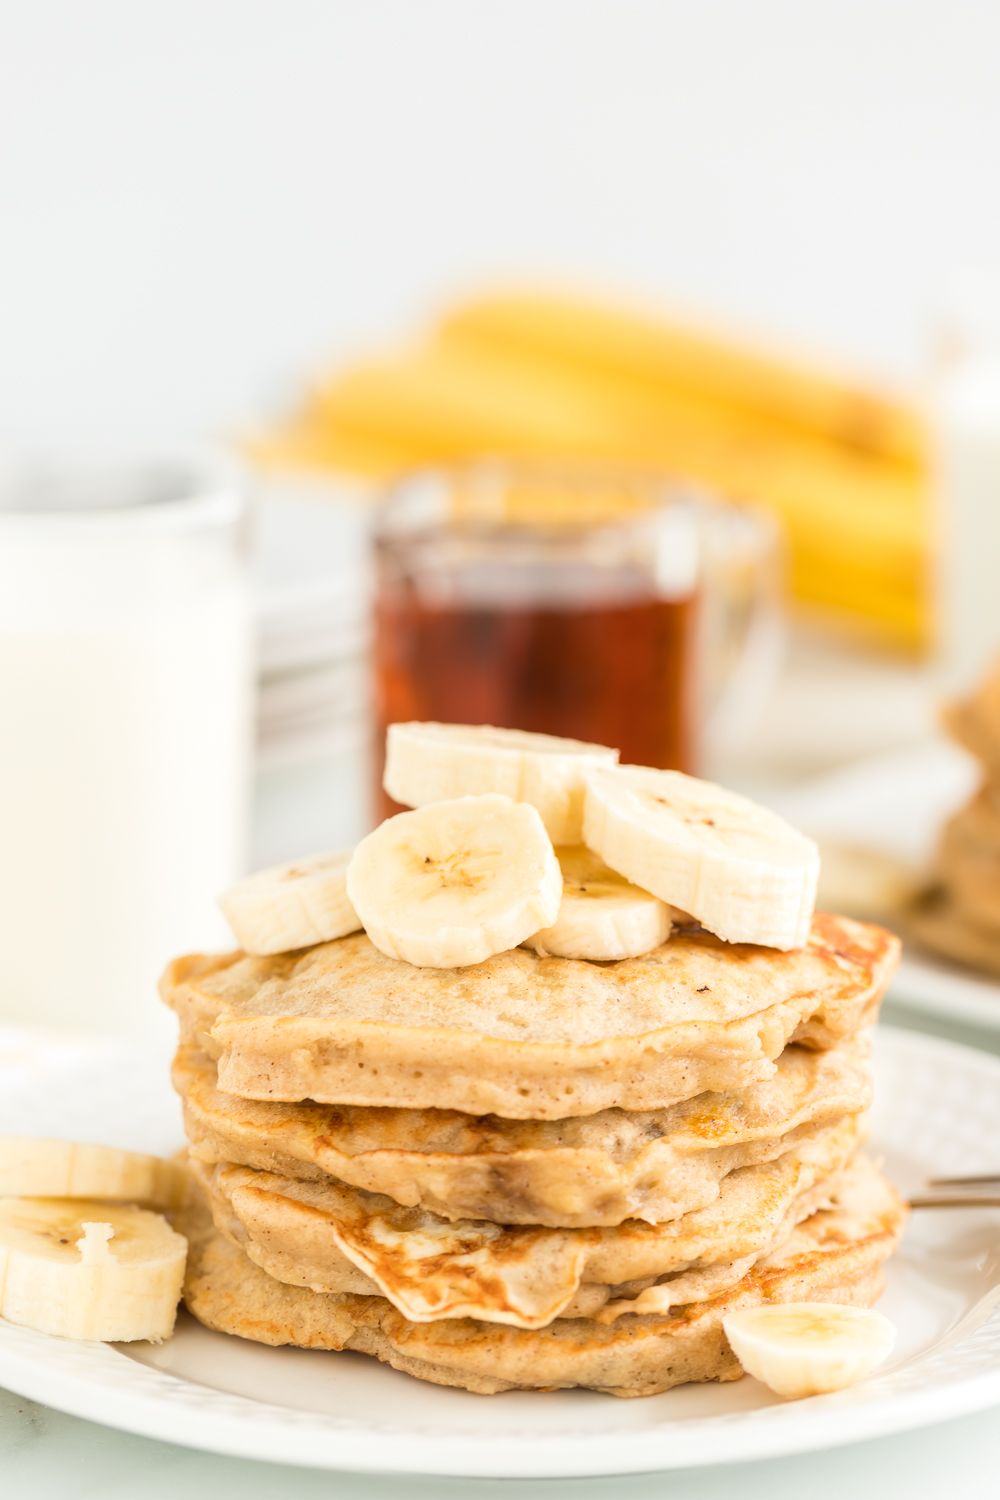 Easy Banana Pancakes a delicious fluffy banana pancake recipe that is so flavorful and perfect for breakfast when topped with syrup and fresh banana slices.